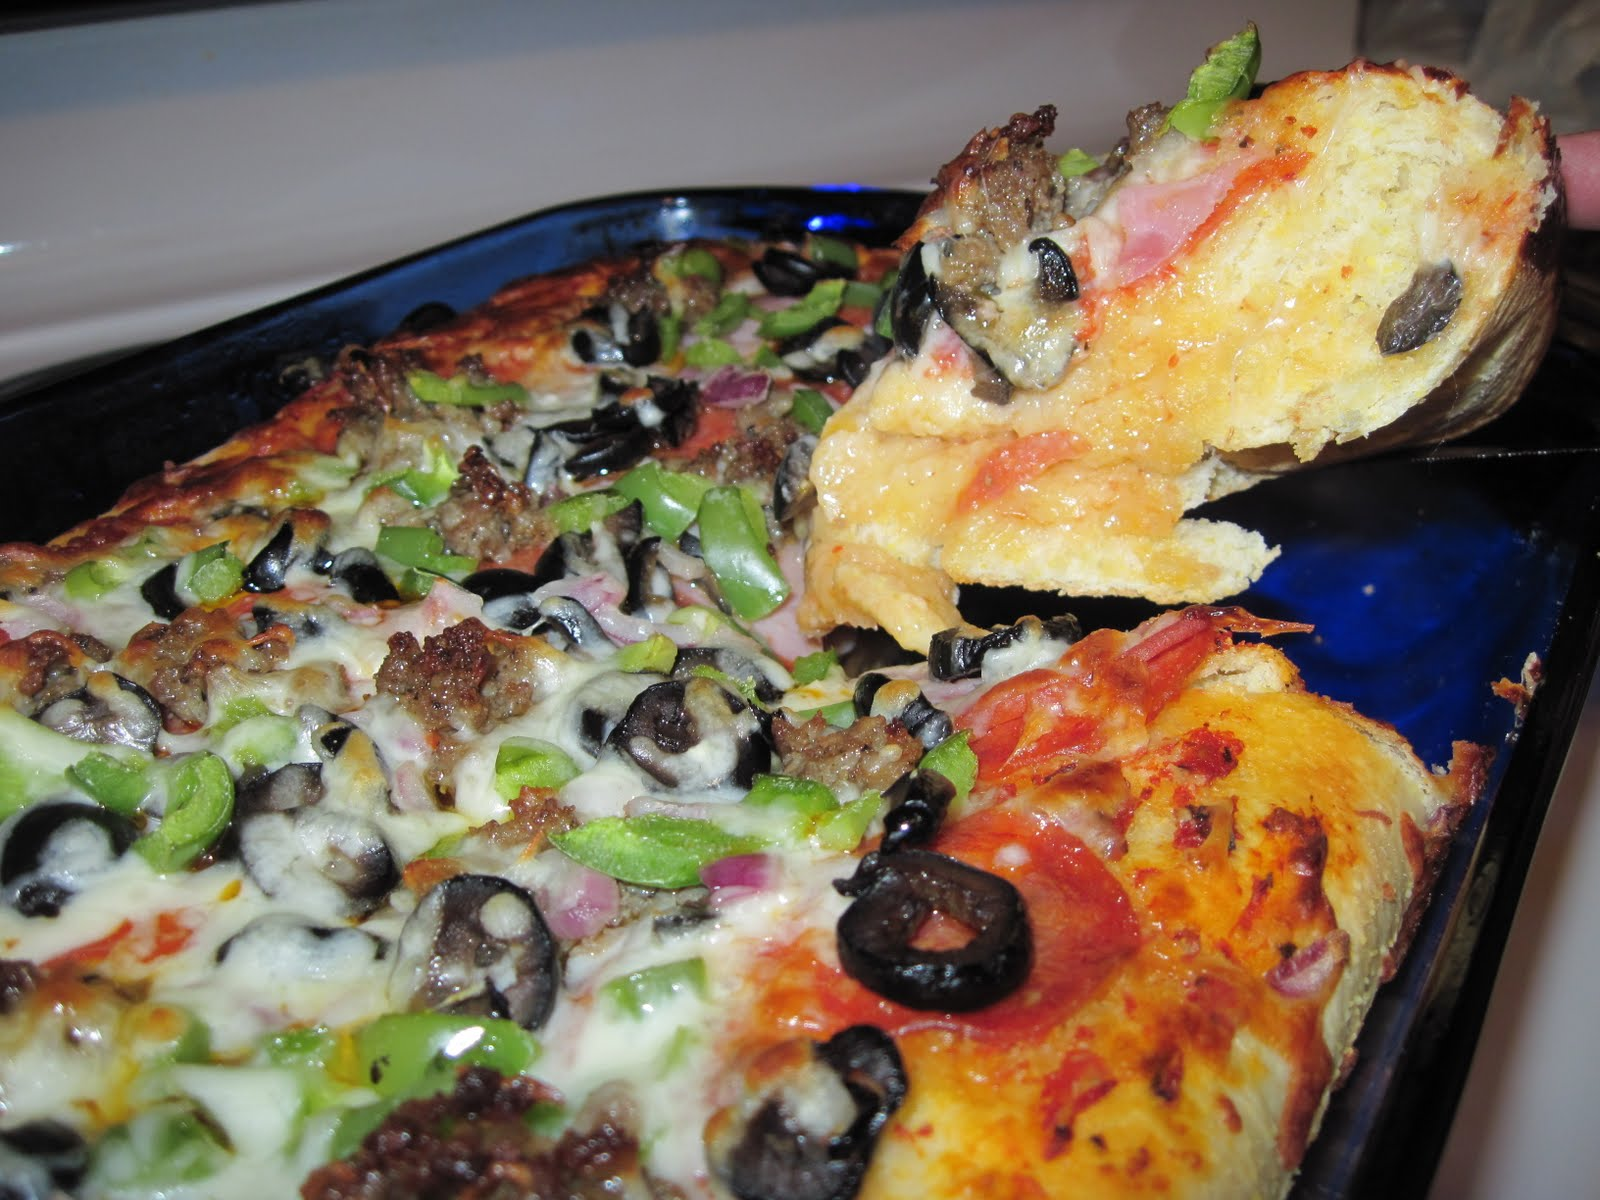 aubrey 39 s recipes chicago style garlic and butter crust pizza. Black Bedroom Furniture Sets. Home Design Ideas